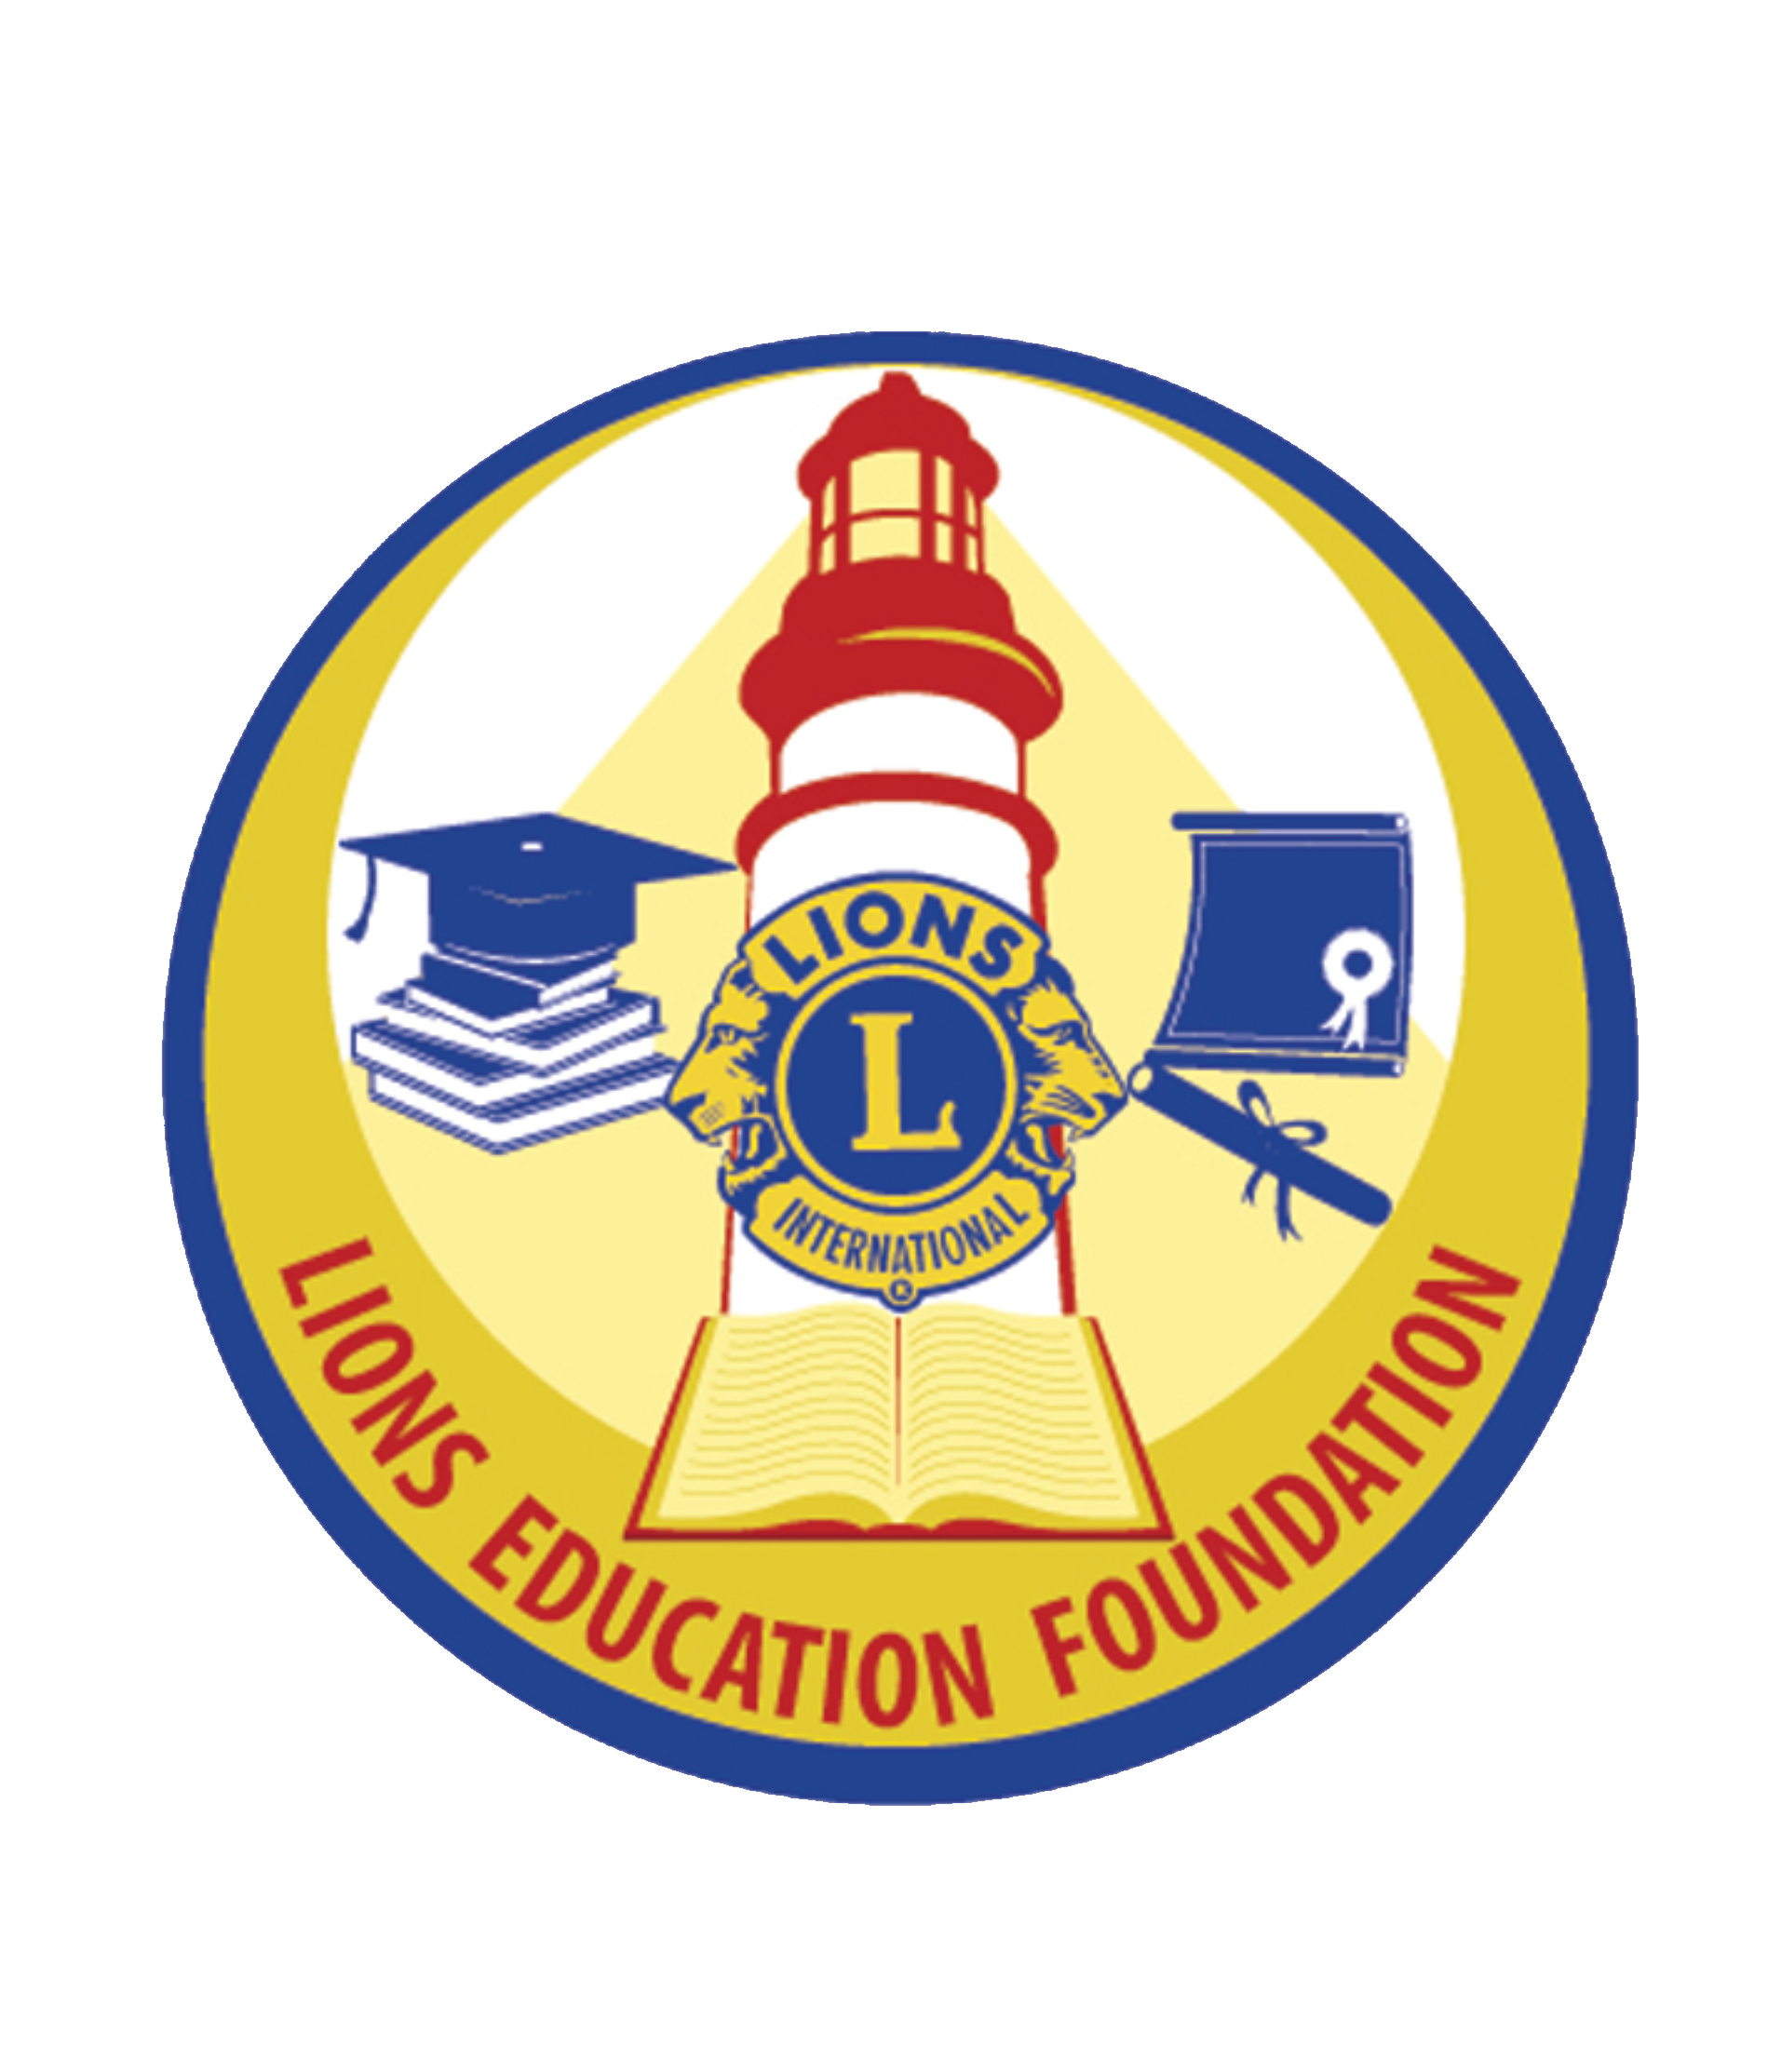 About Lions Education Foundation